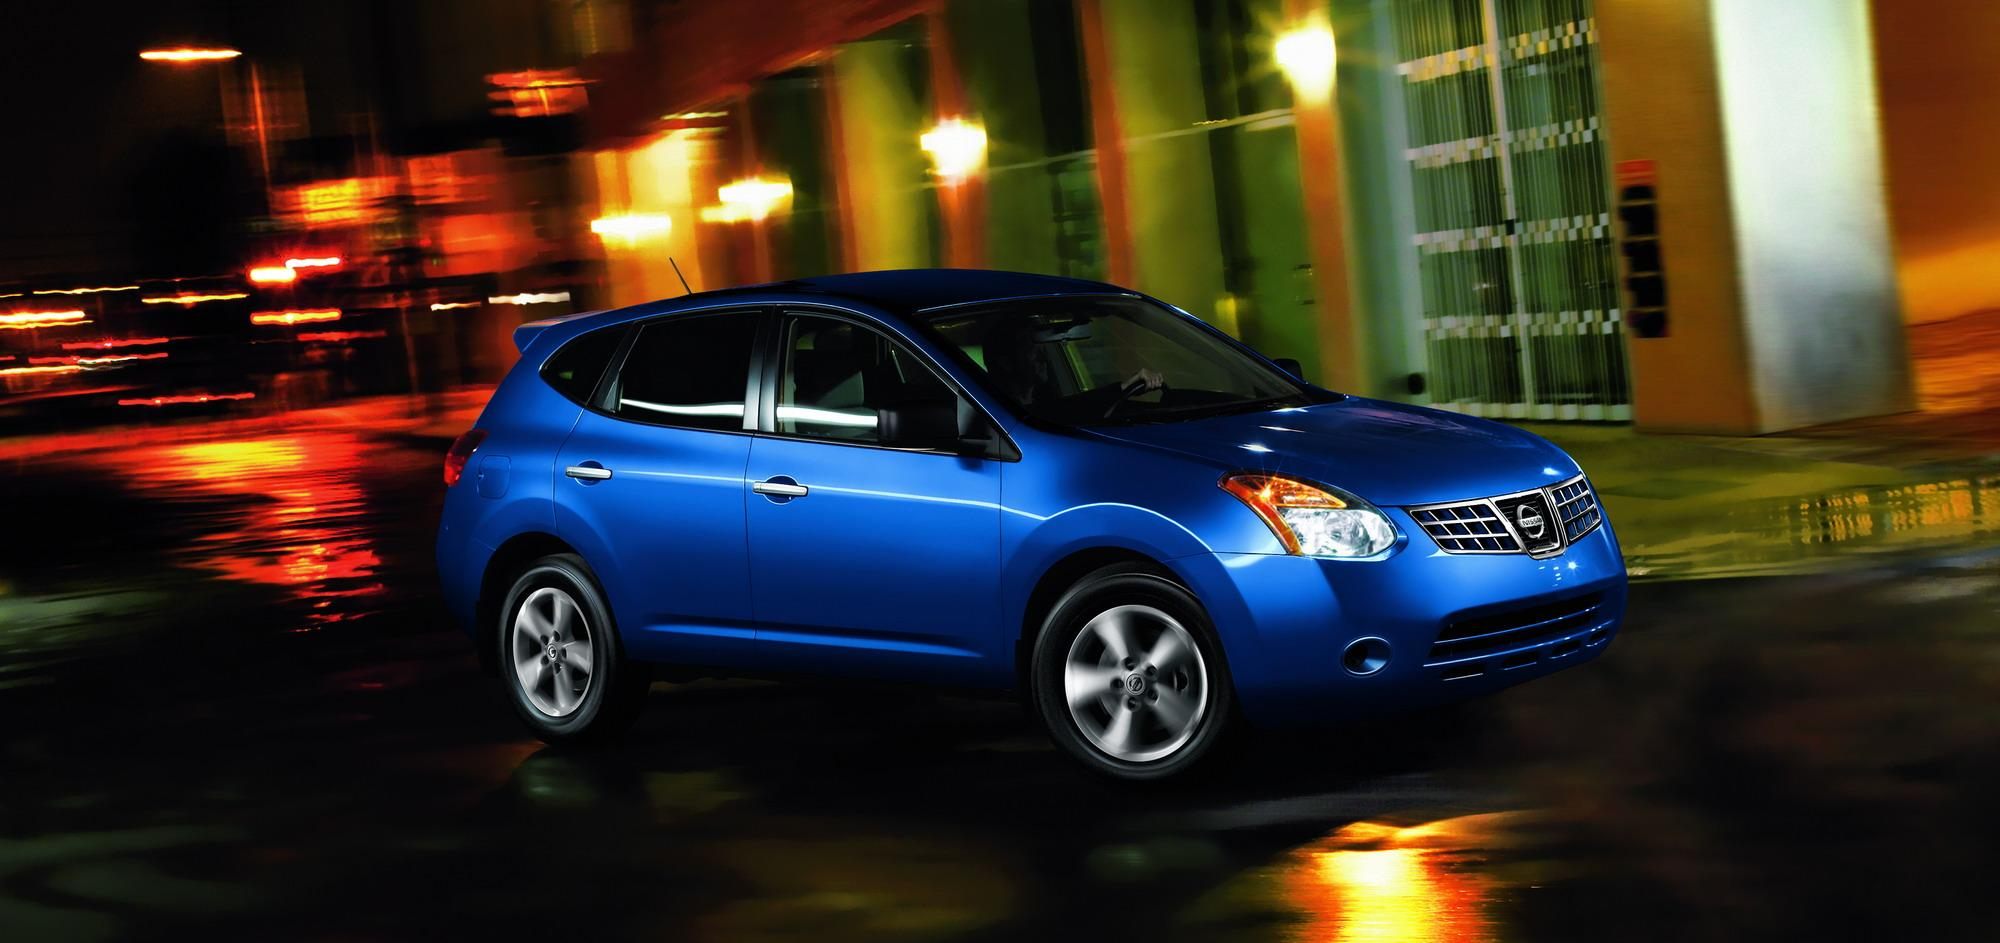 2010 nissan rogue prices announced news gallery top speed. Black Bedroom Furniture Sets. Home Design Ideas